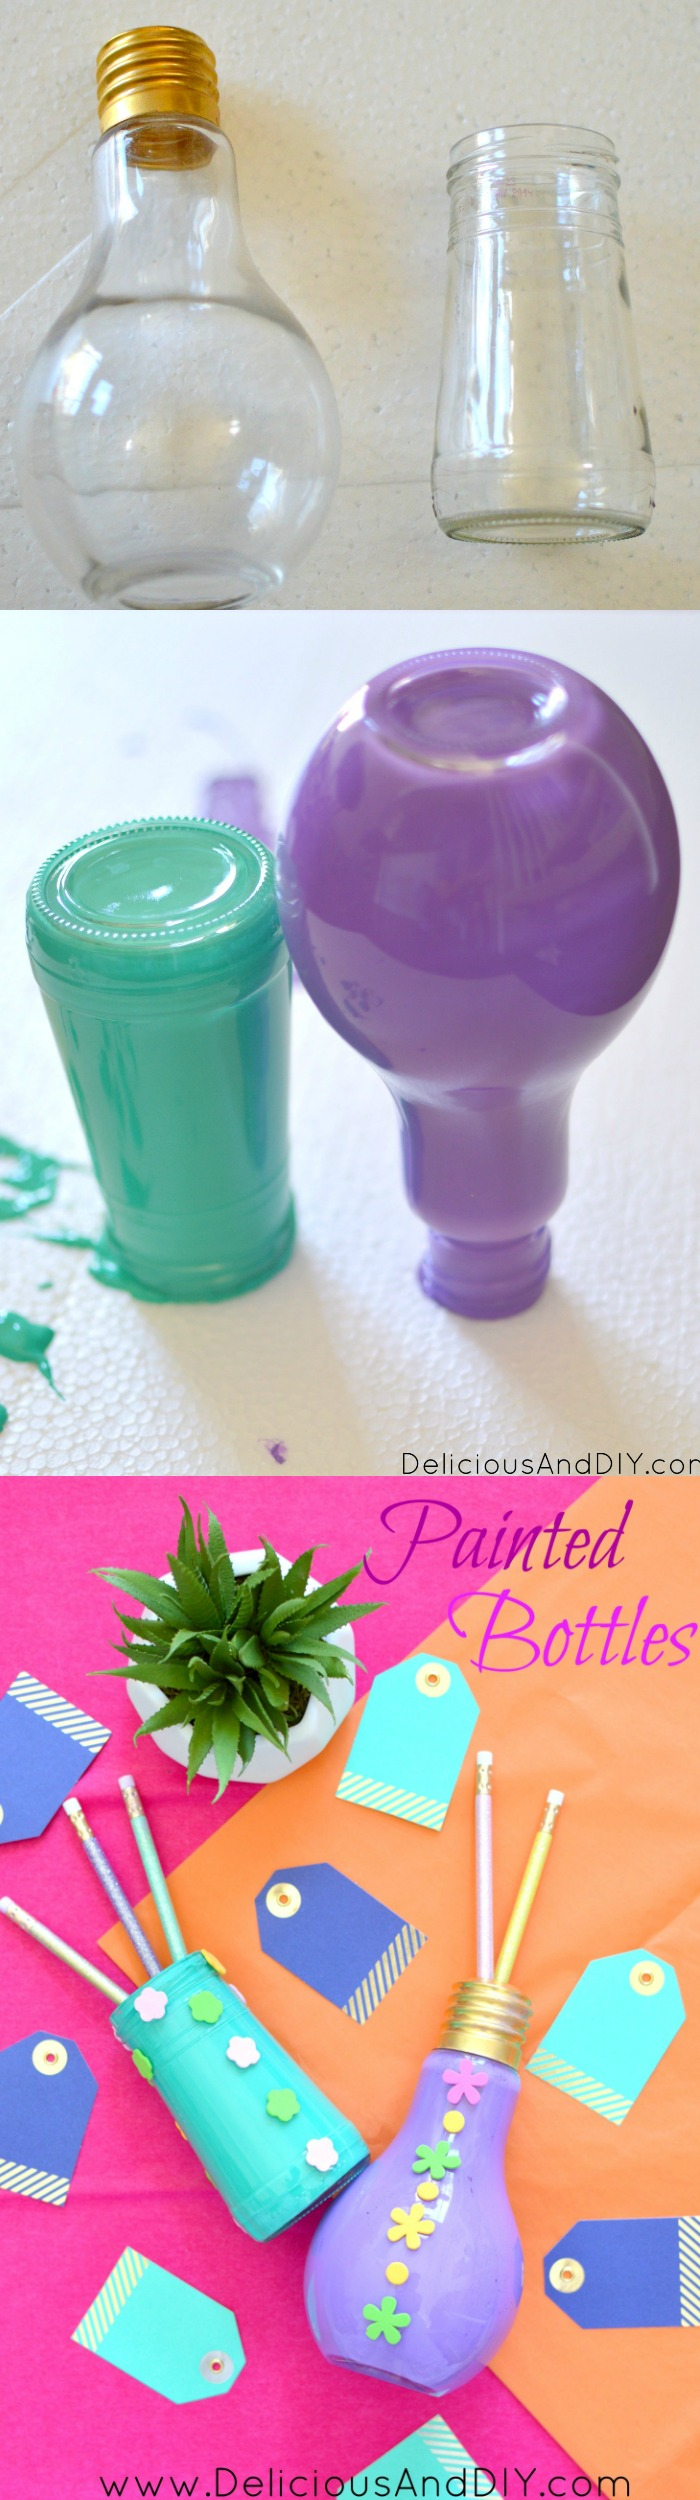 Recycle those empty bottles by this super simple Painted Bottle Technique  Create gorgeous painted bottles  Recycled bottles  Upcycled bottles  Bottle Craft Ideas  Painted Bottles DIY